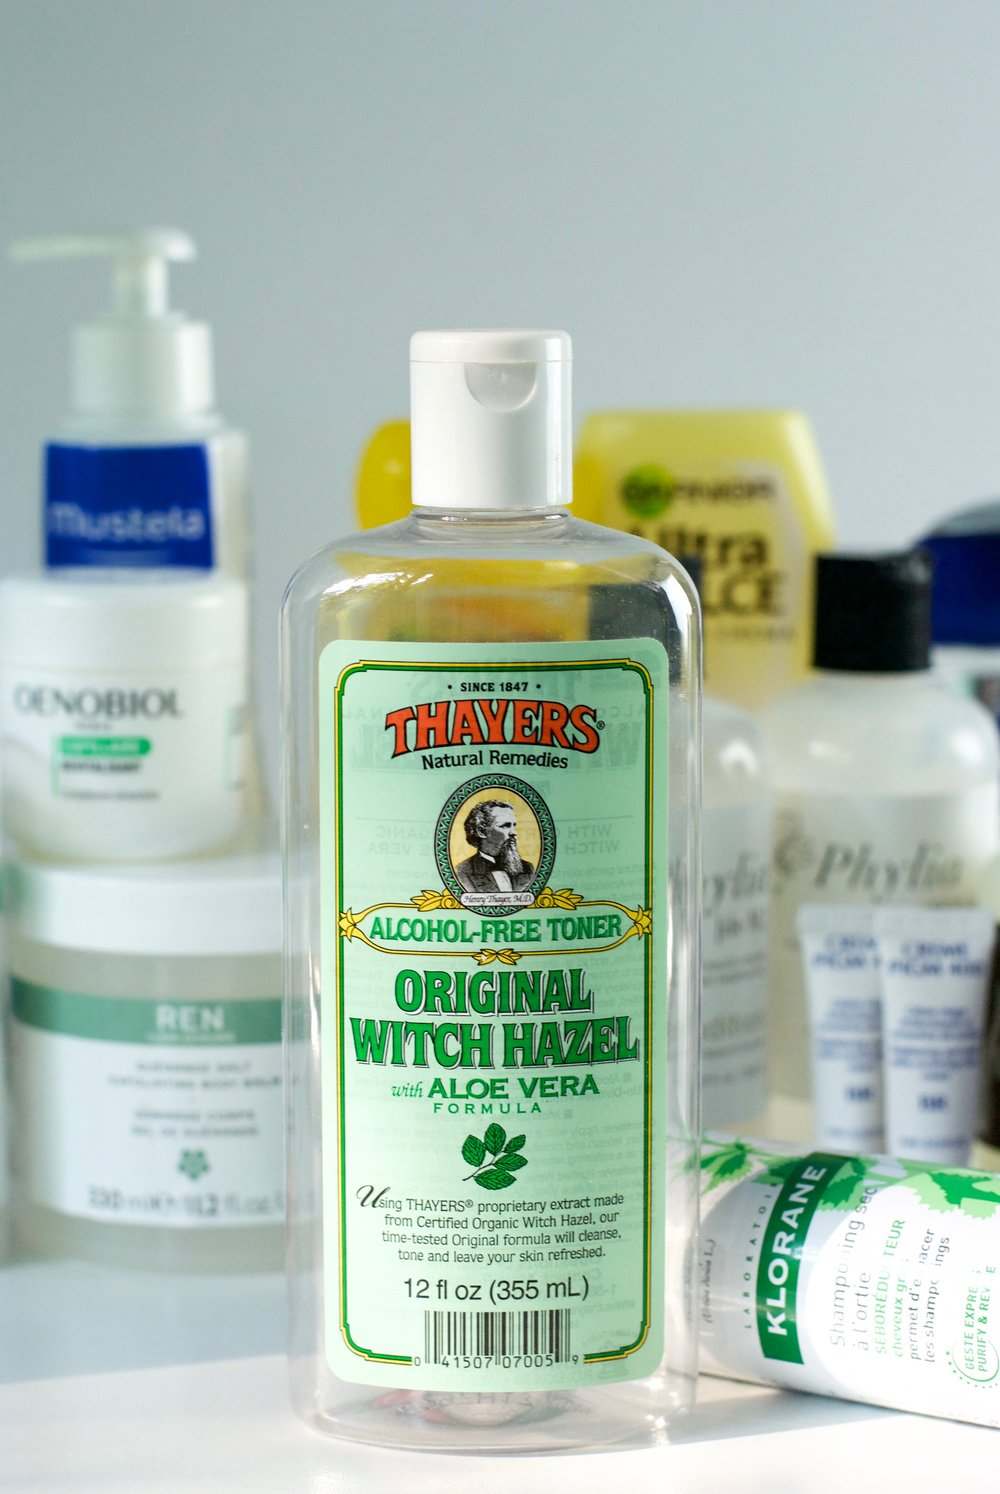 Beauty by Brittany Thayer's Original Witch Hazel with Aloe Vera